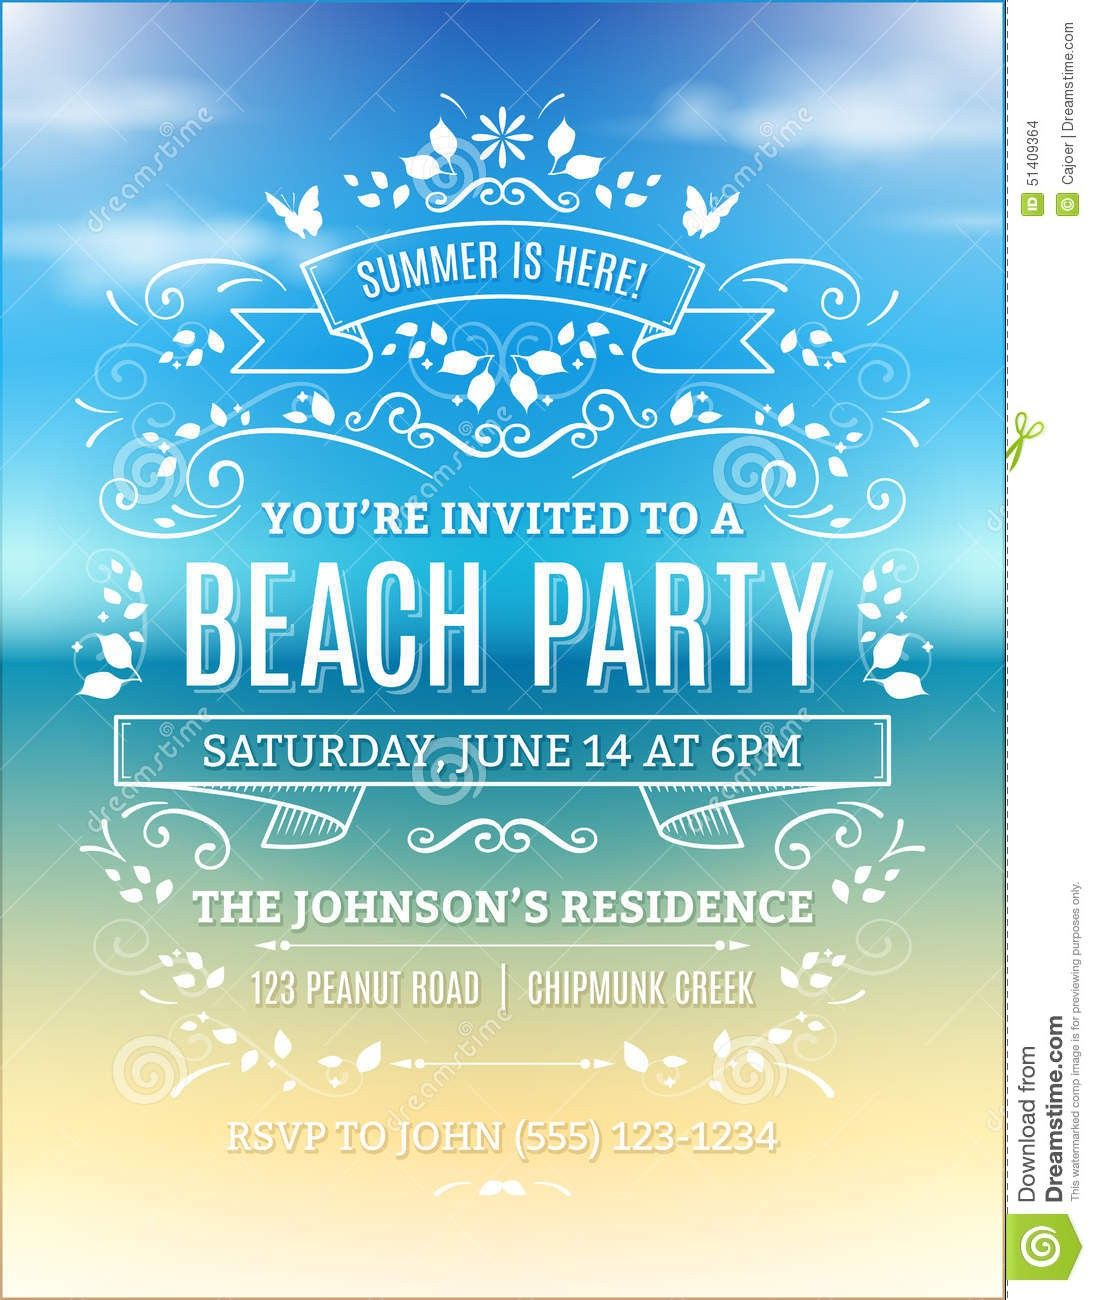 Free printable beach party invitations lexis 13th b day party impressive free printable dinner party invitations especially college graduate sample resume examples of a good essay introduction dental hygiene cover stopboris Image collections